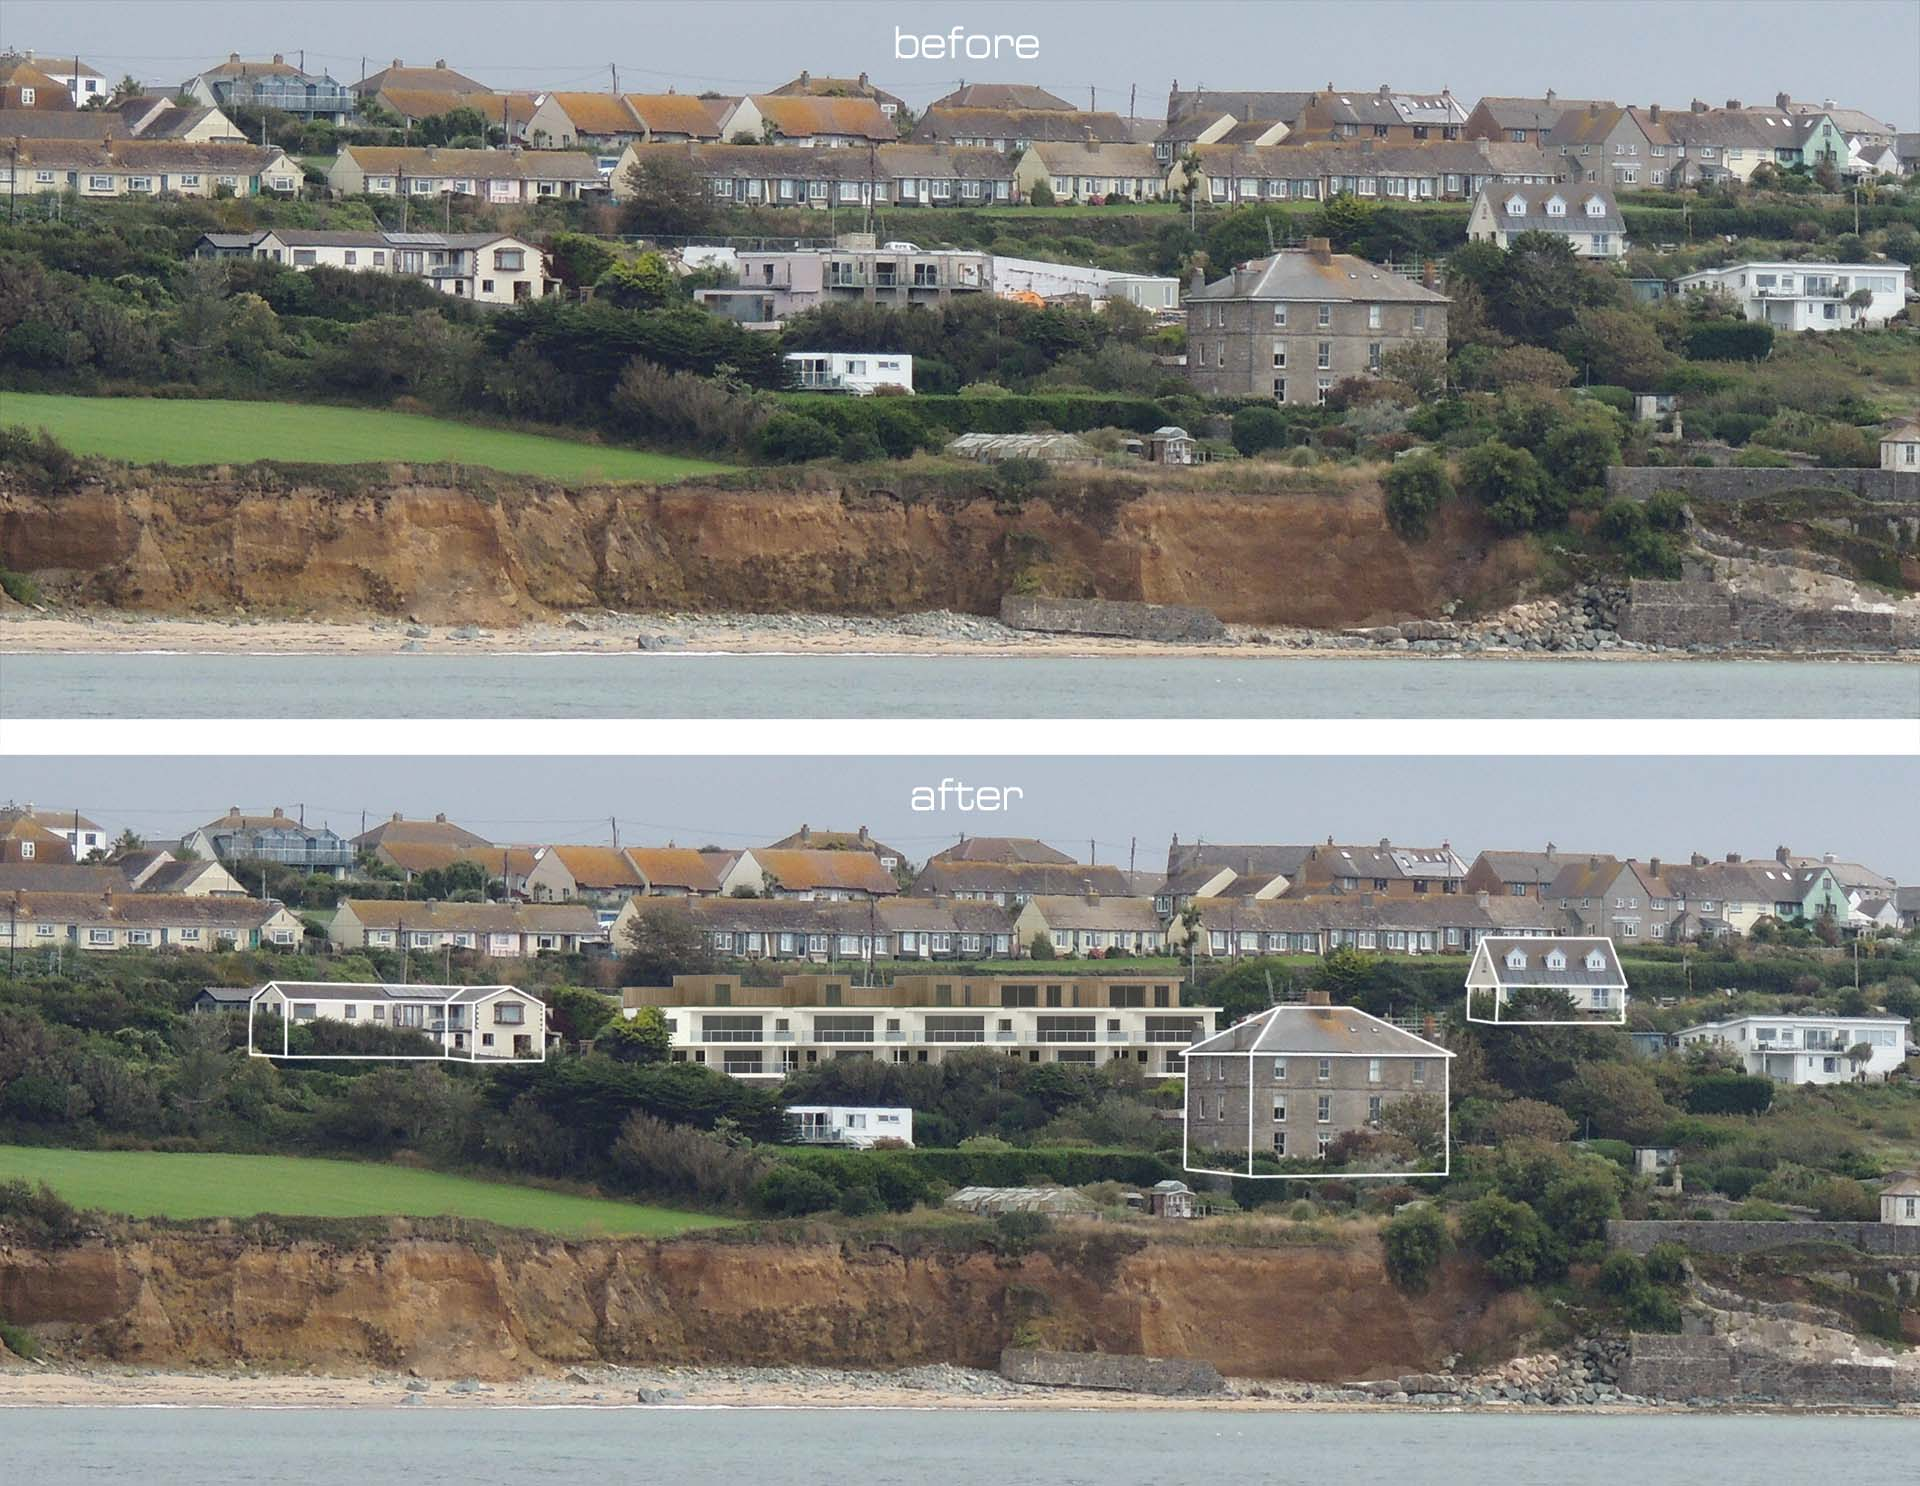 Cornwall architectural montage image